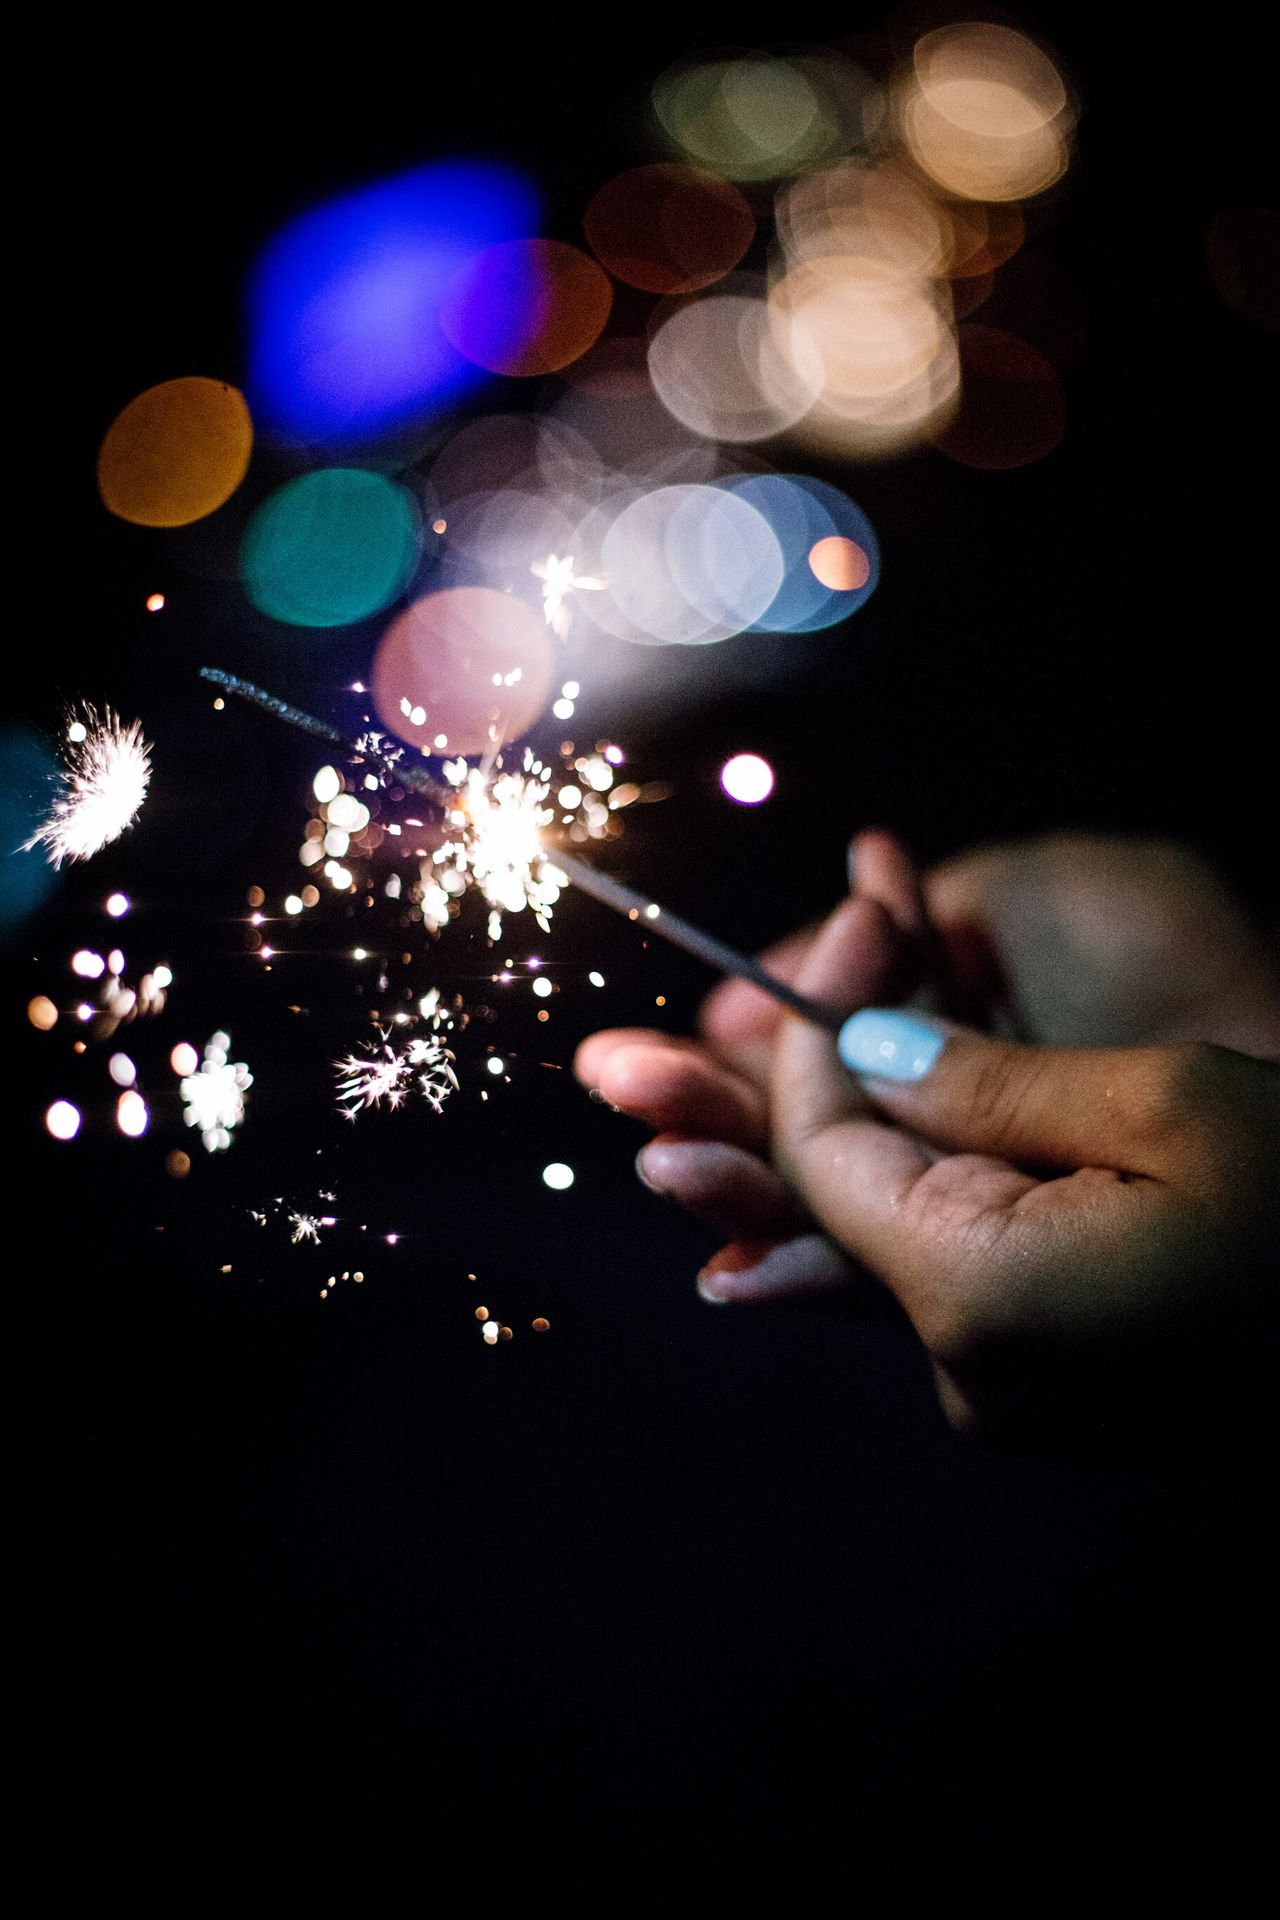 Lights Light And Shadow Sparks Sparklers Hands Bokeh Bokeh Photography